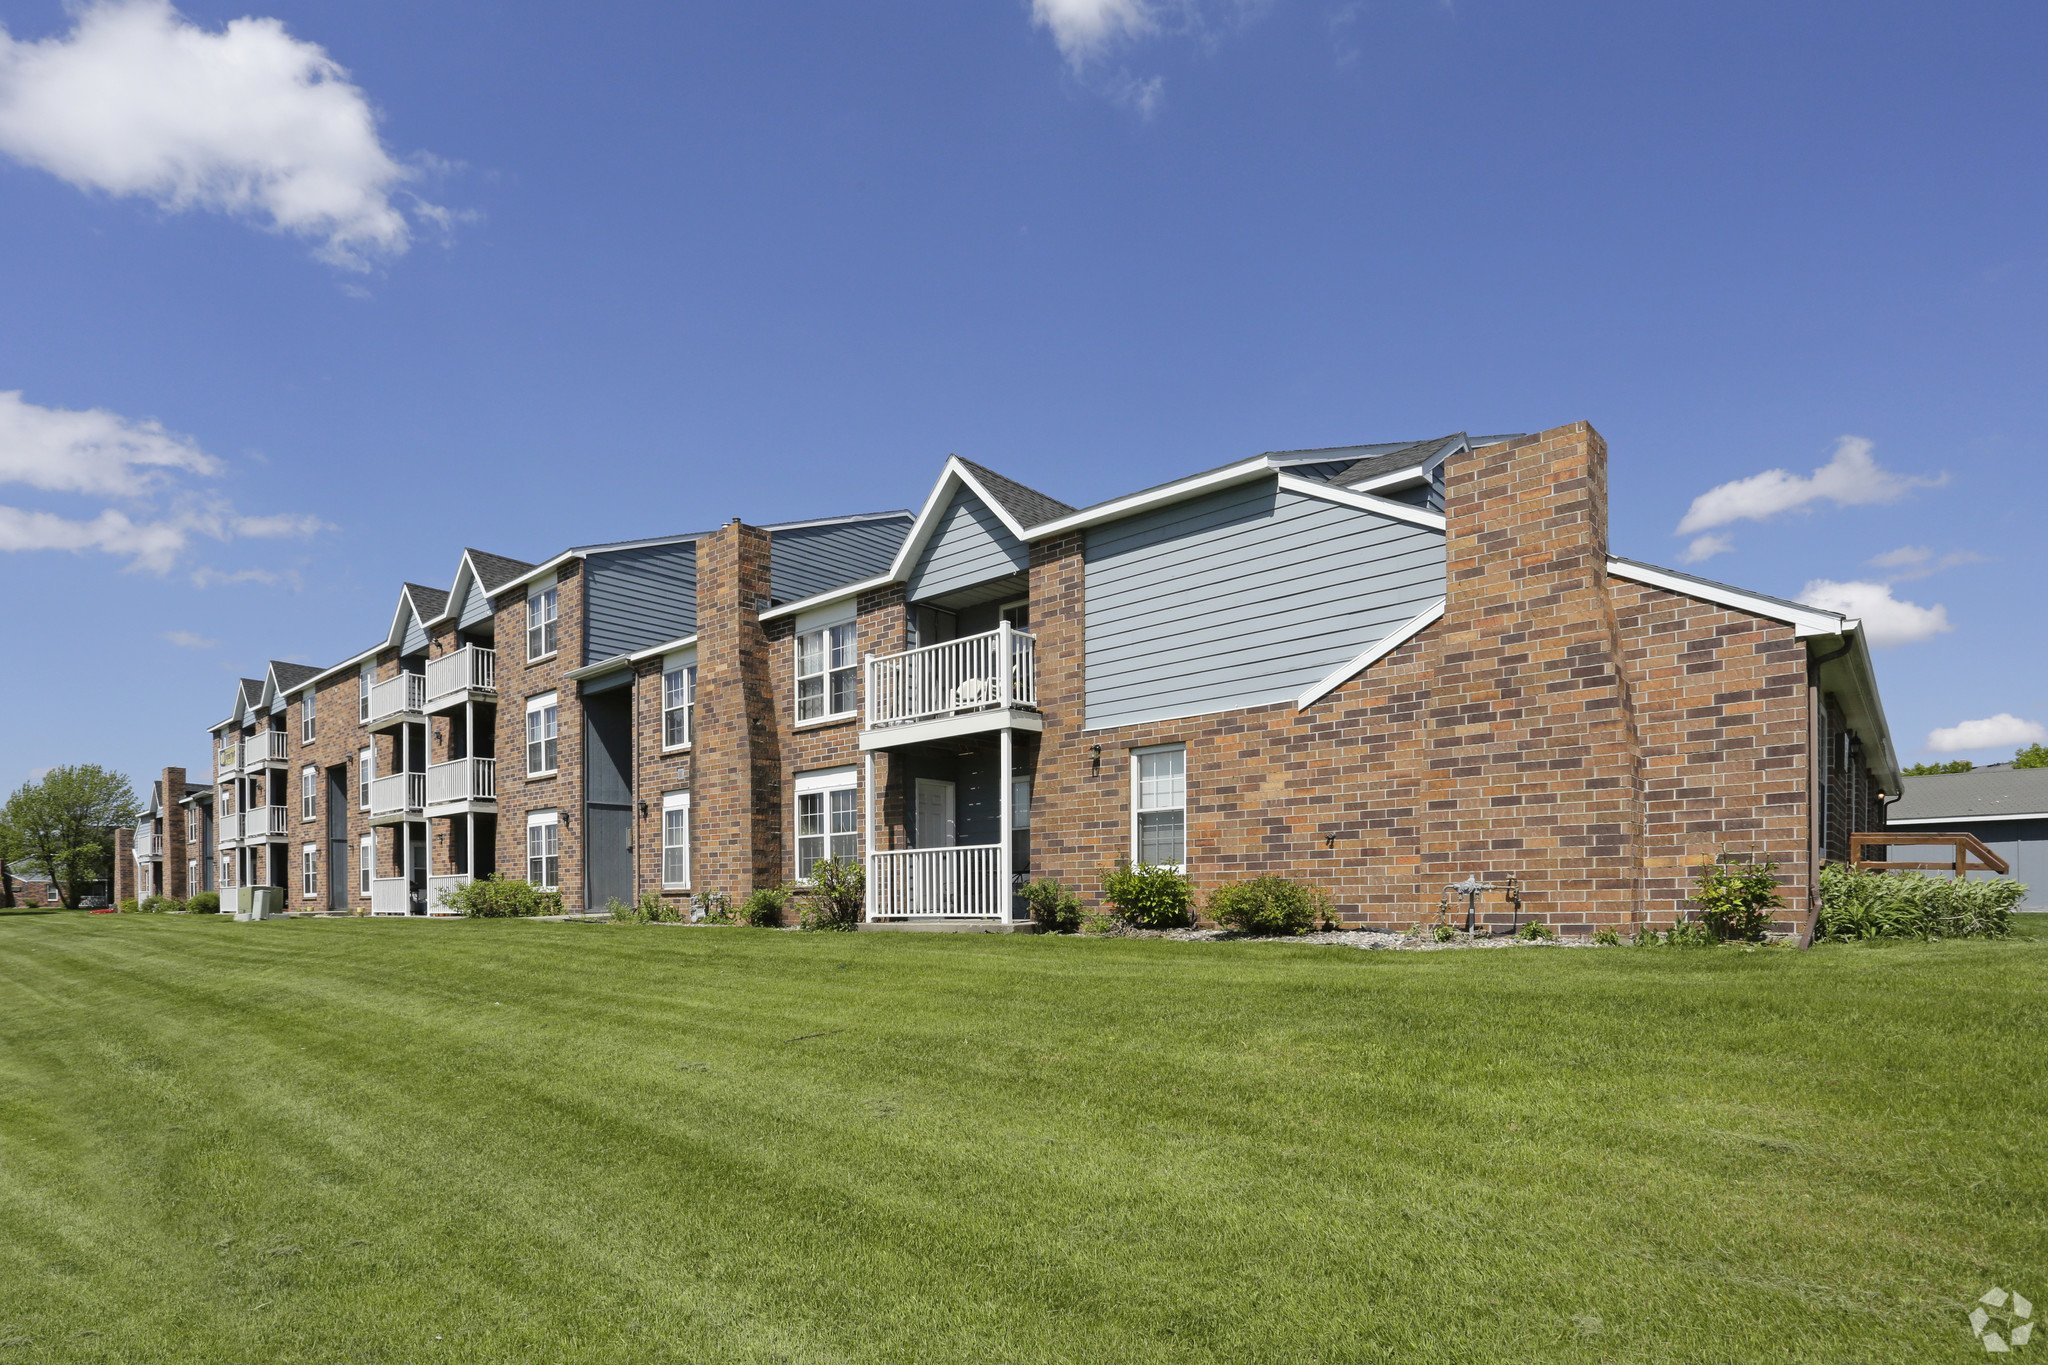 2 bedroom apartments for lease grand forks hampton - 2 bedroom apartments grand forks nd ...